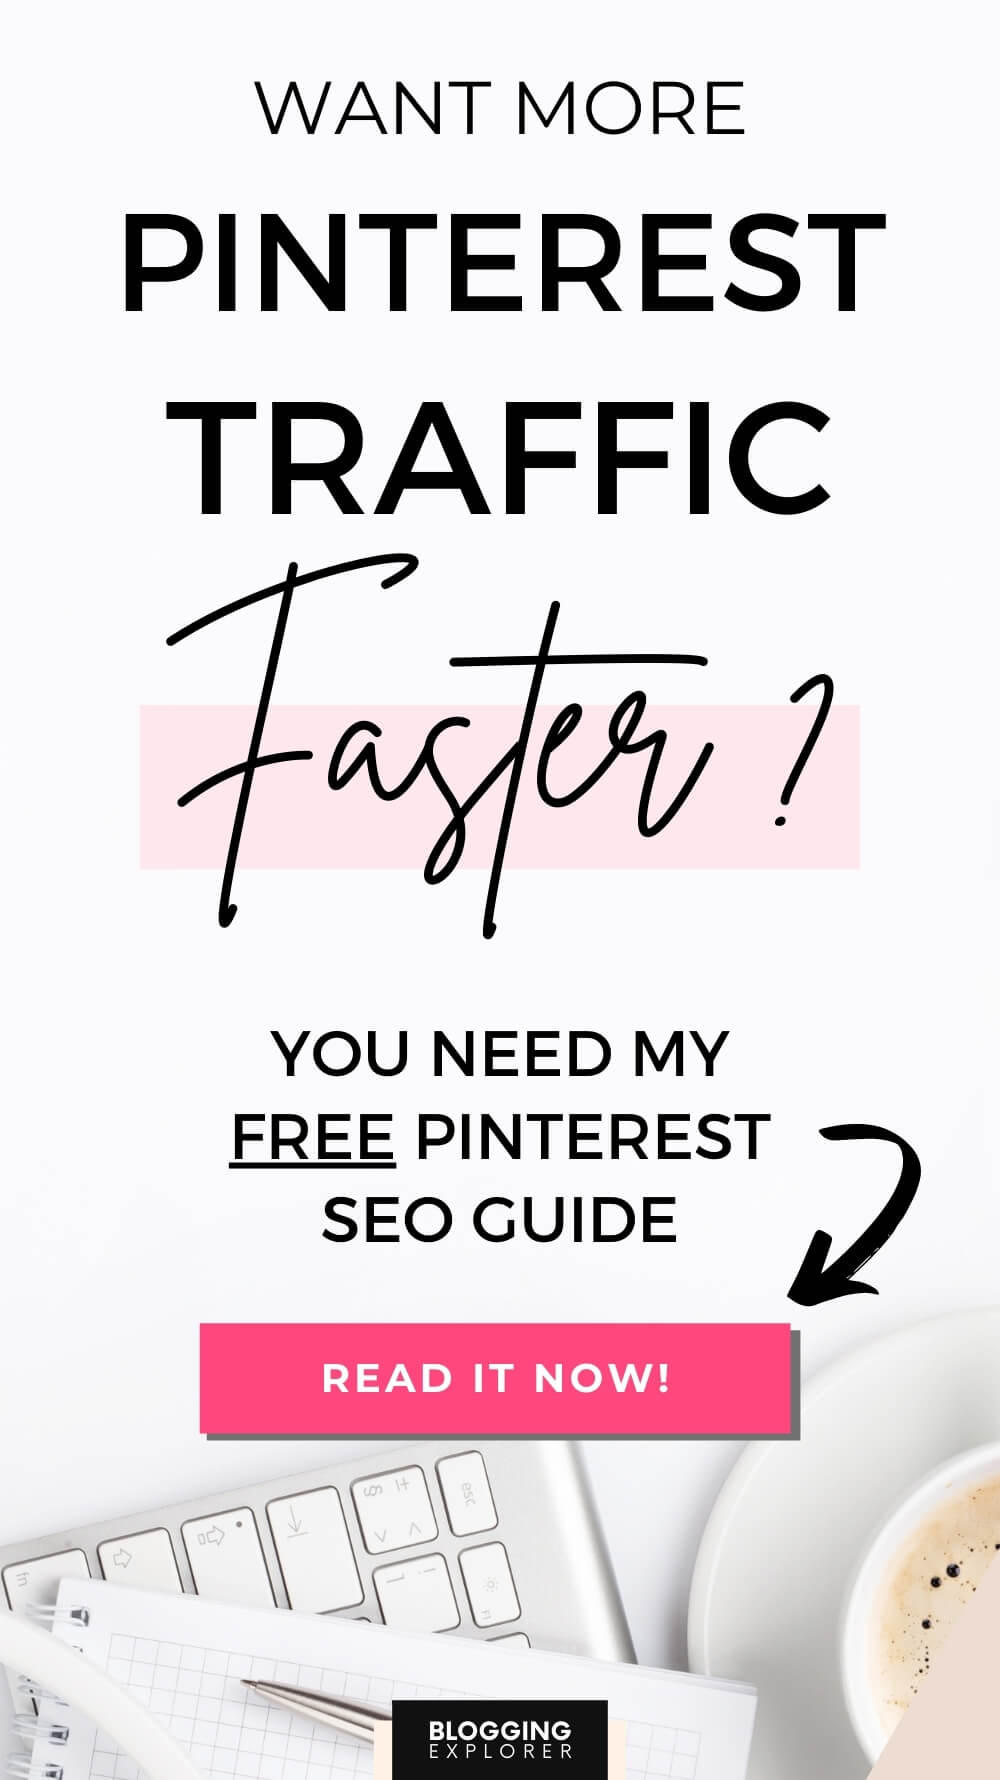 Pinterest marketing strategy and SEO guide - Blogging Explorer